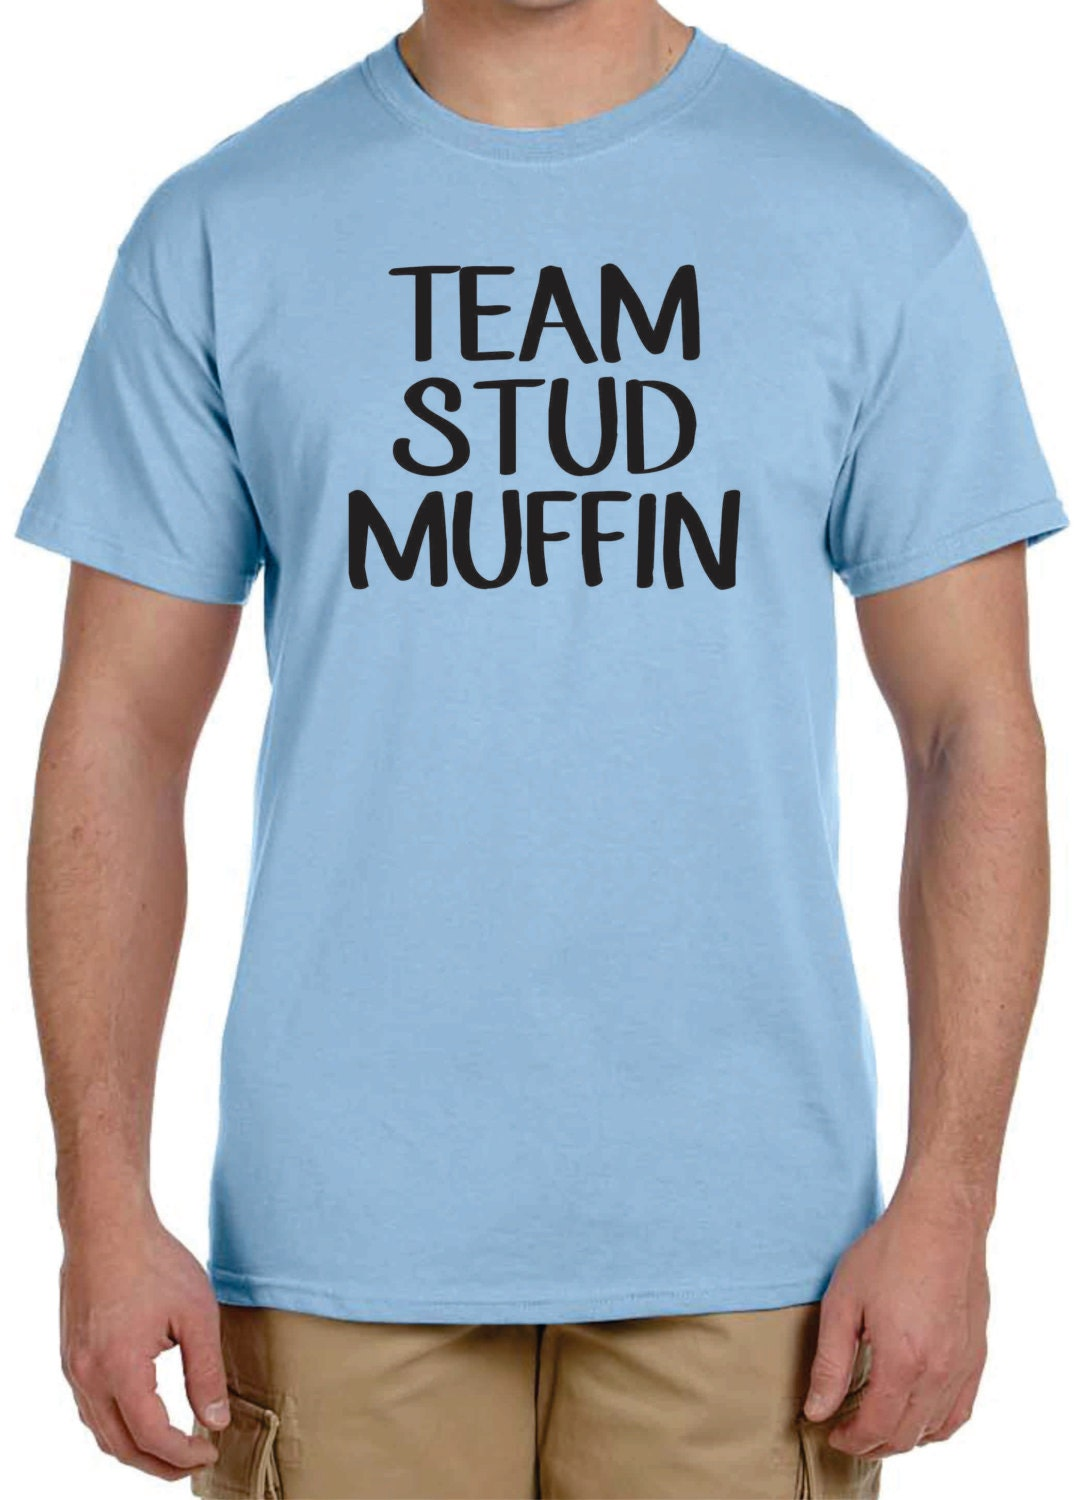 Gender Reveal T Shirt Ideas Team Stud Muffin Or Team Cupcake Etsy